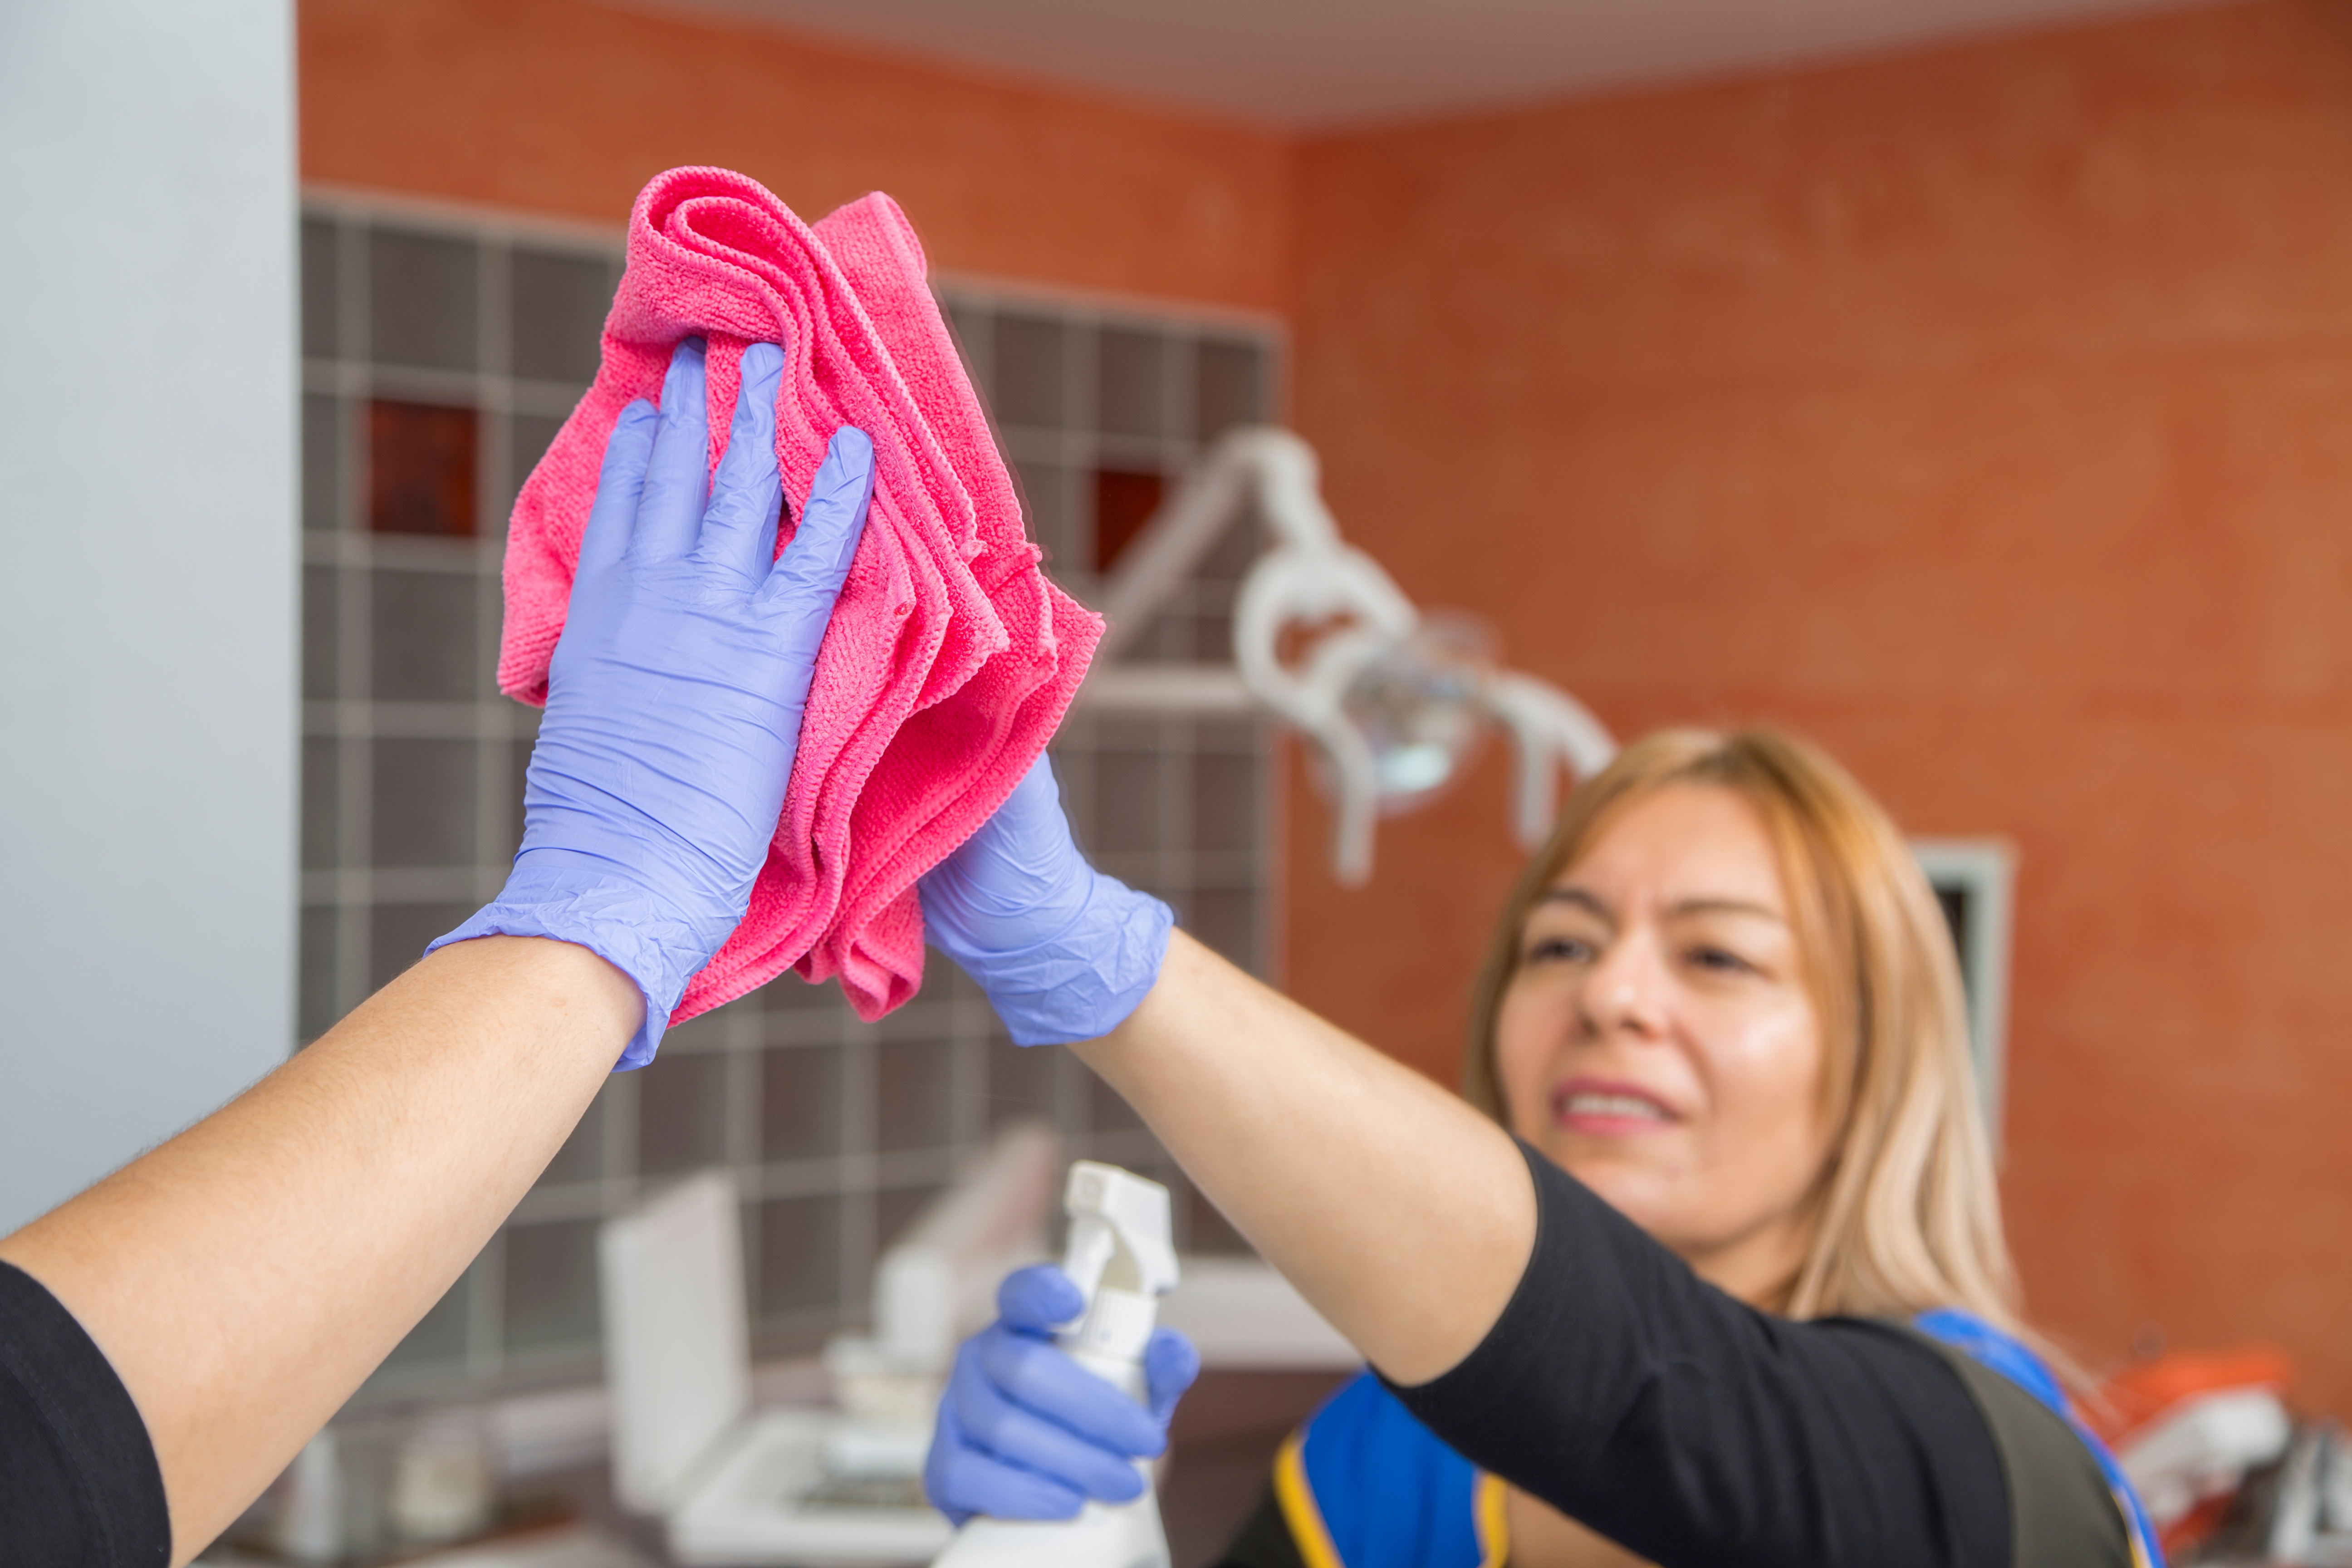 tenancy Cleaners St Johns Wood, NW8